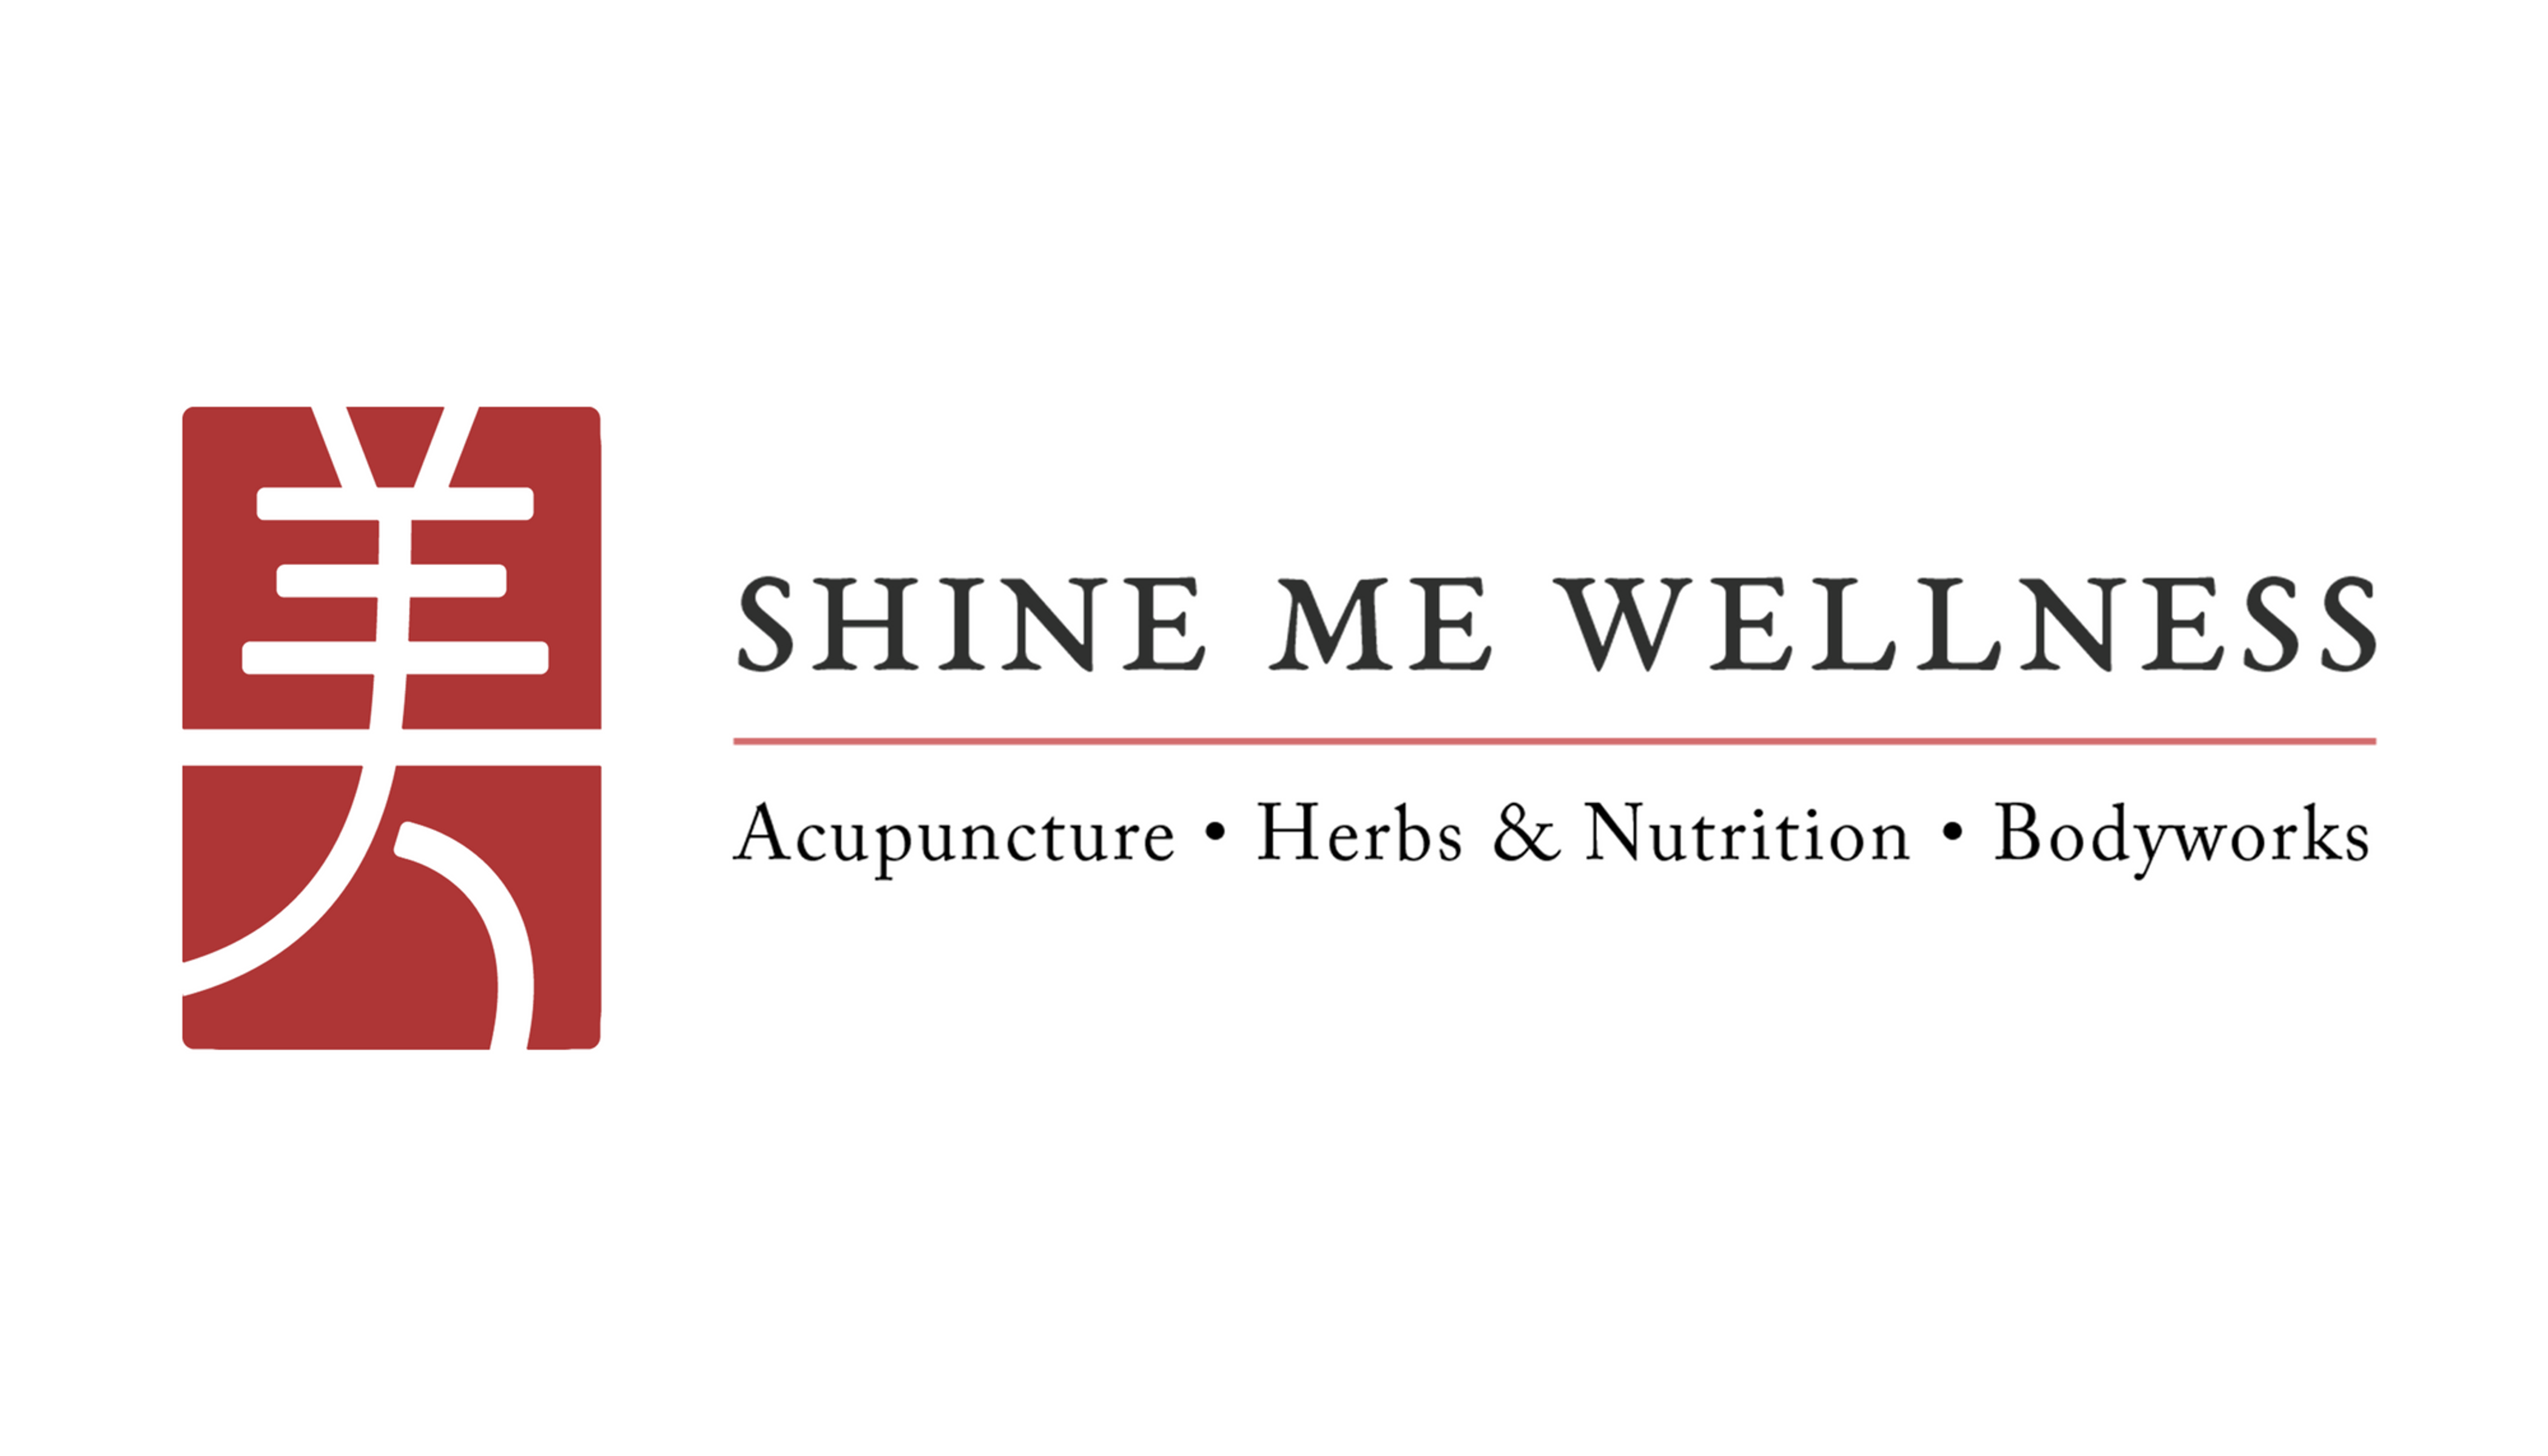 Shine Me Wellness Oakland Acupuncture Self Care Pain Relief